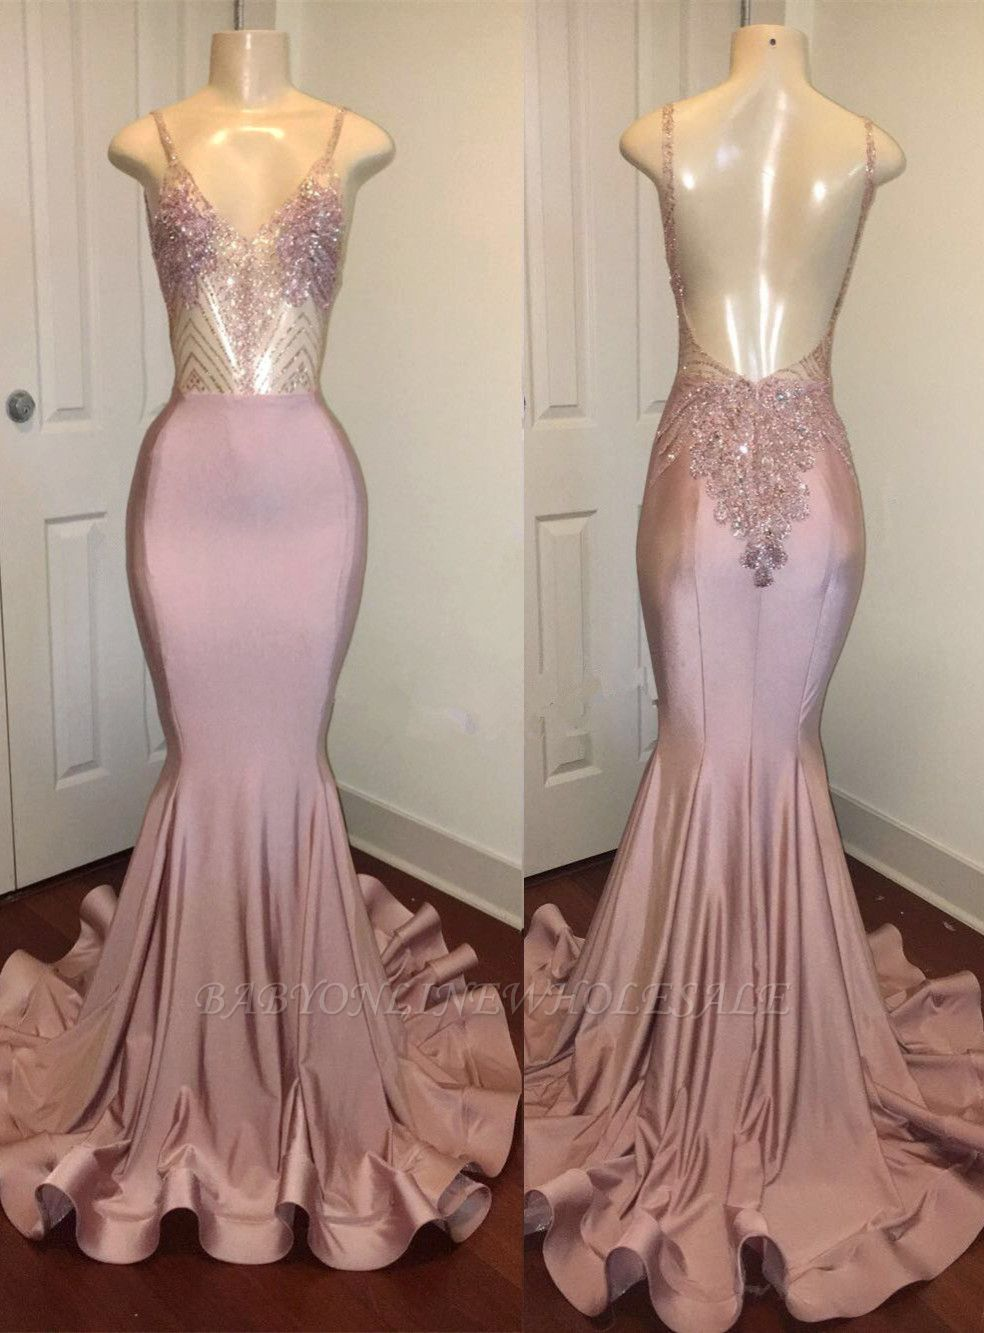 Newest Pink Beads Spaghetti Strap Prom Dress | Mermaid Prom Dress